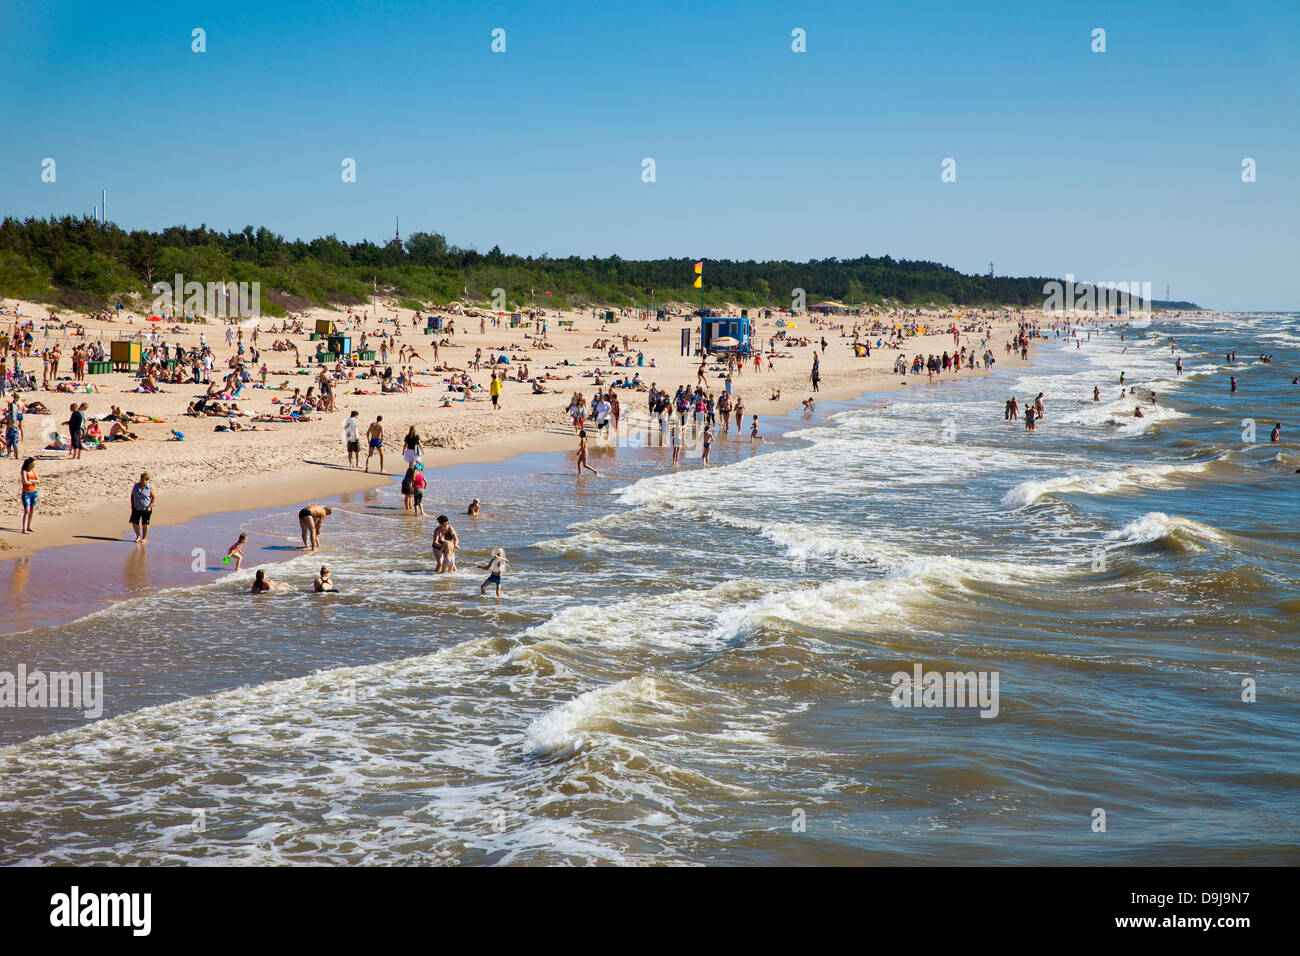 Palanga beach at summer full on people having fun. Palanga is a popular resort in Lithuania. - Stock Image